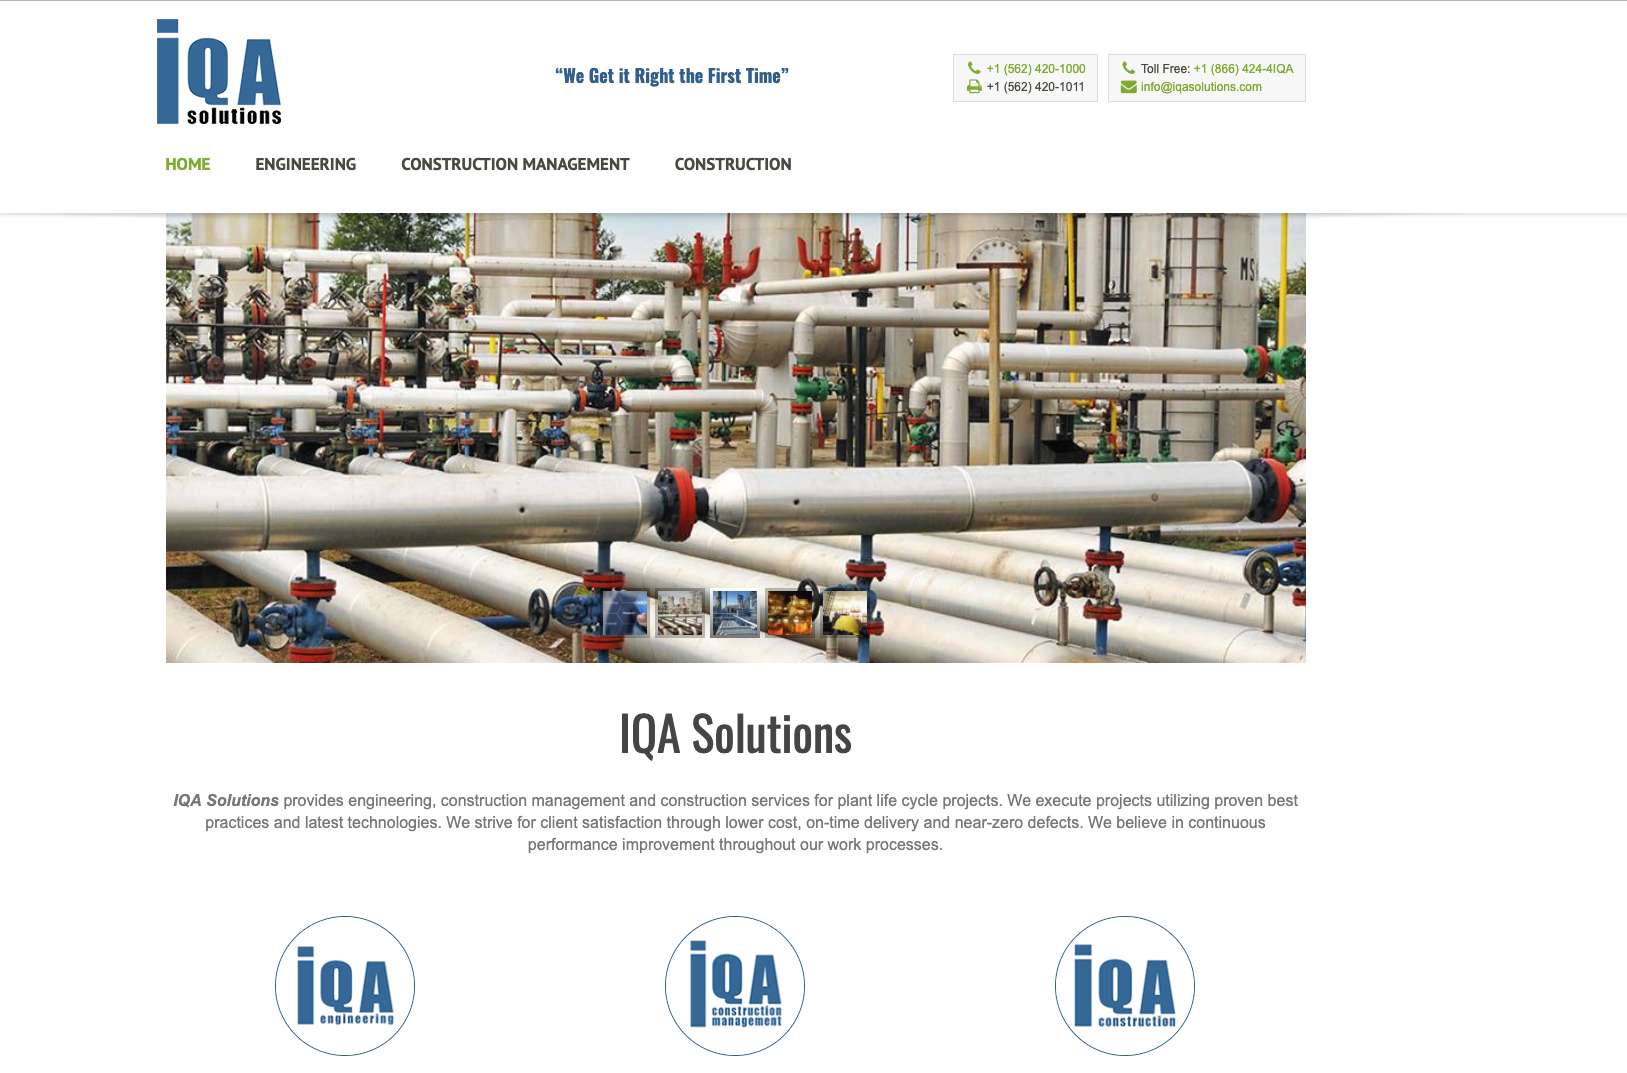 www.iqasolutions.com